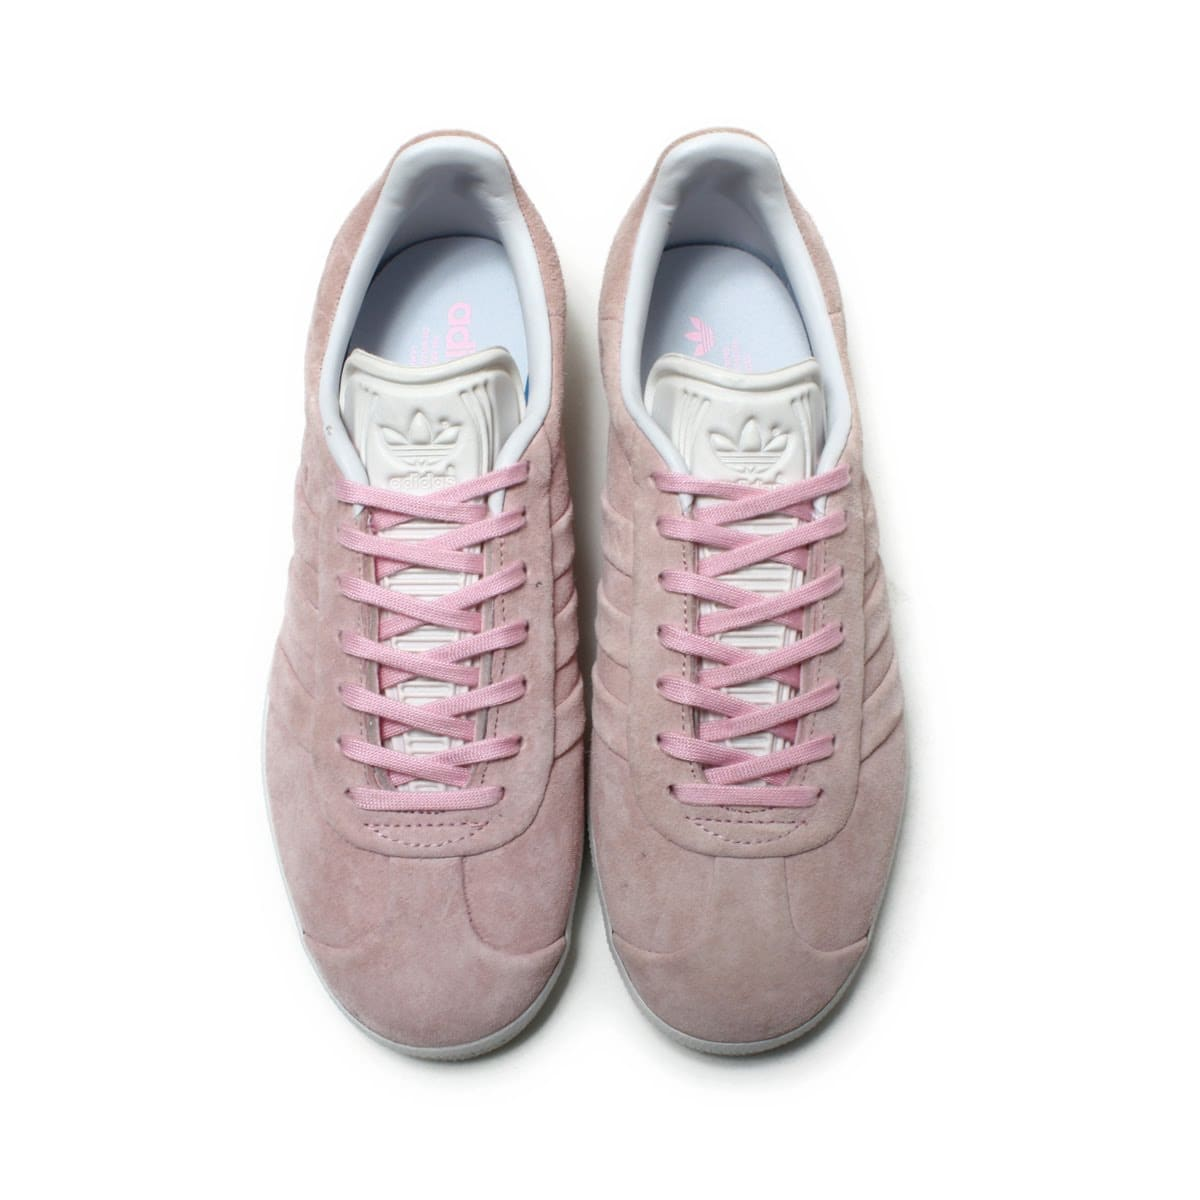 Adidas Originals Gazelle Stitch and Turn Wonder Pink